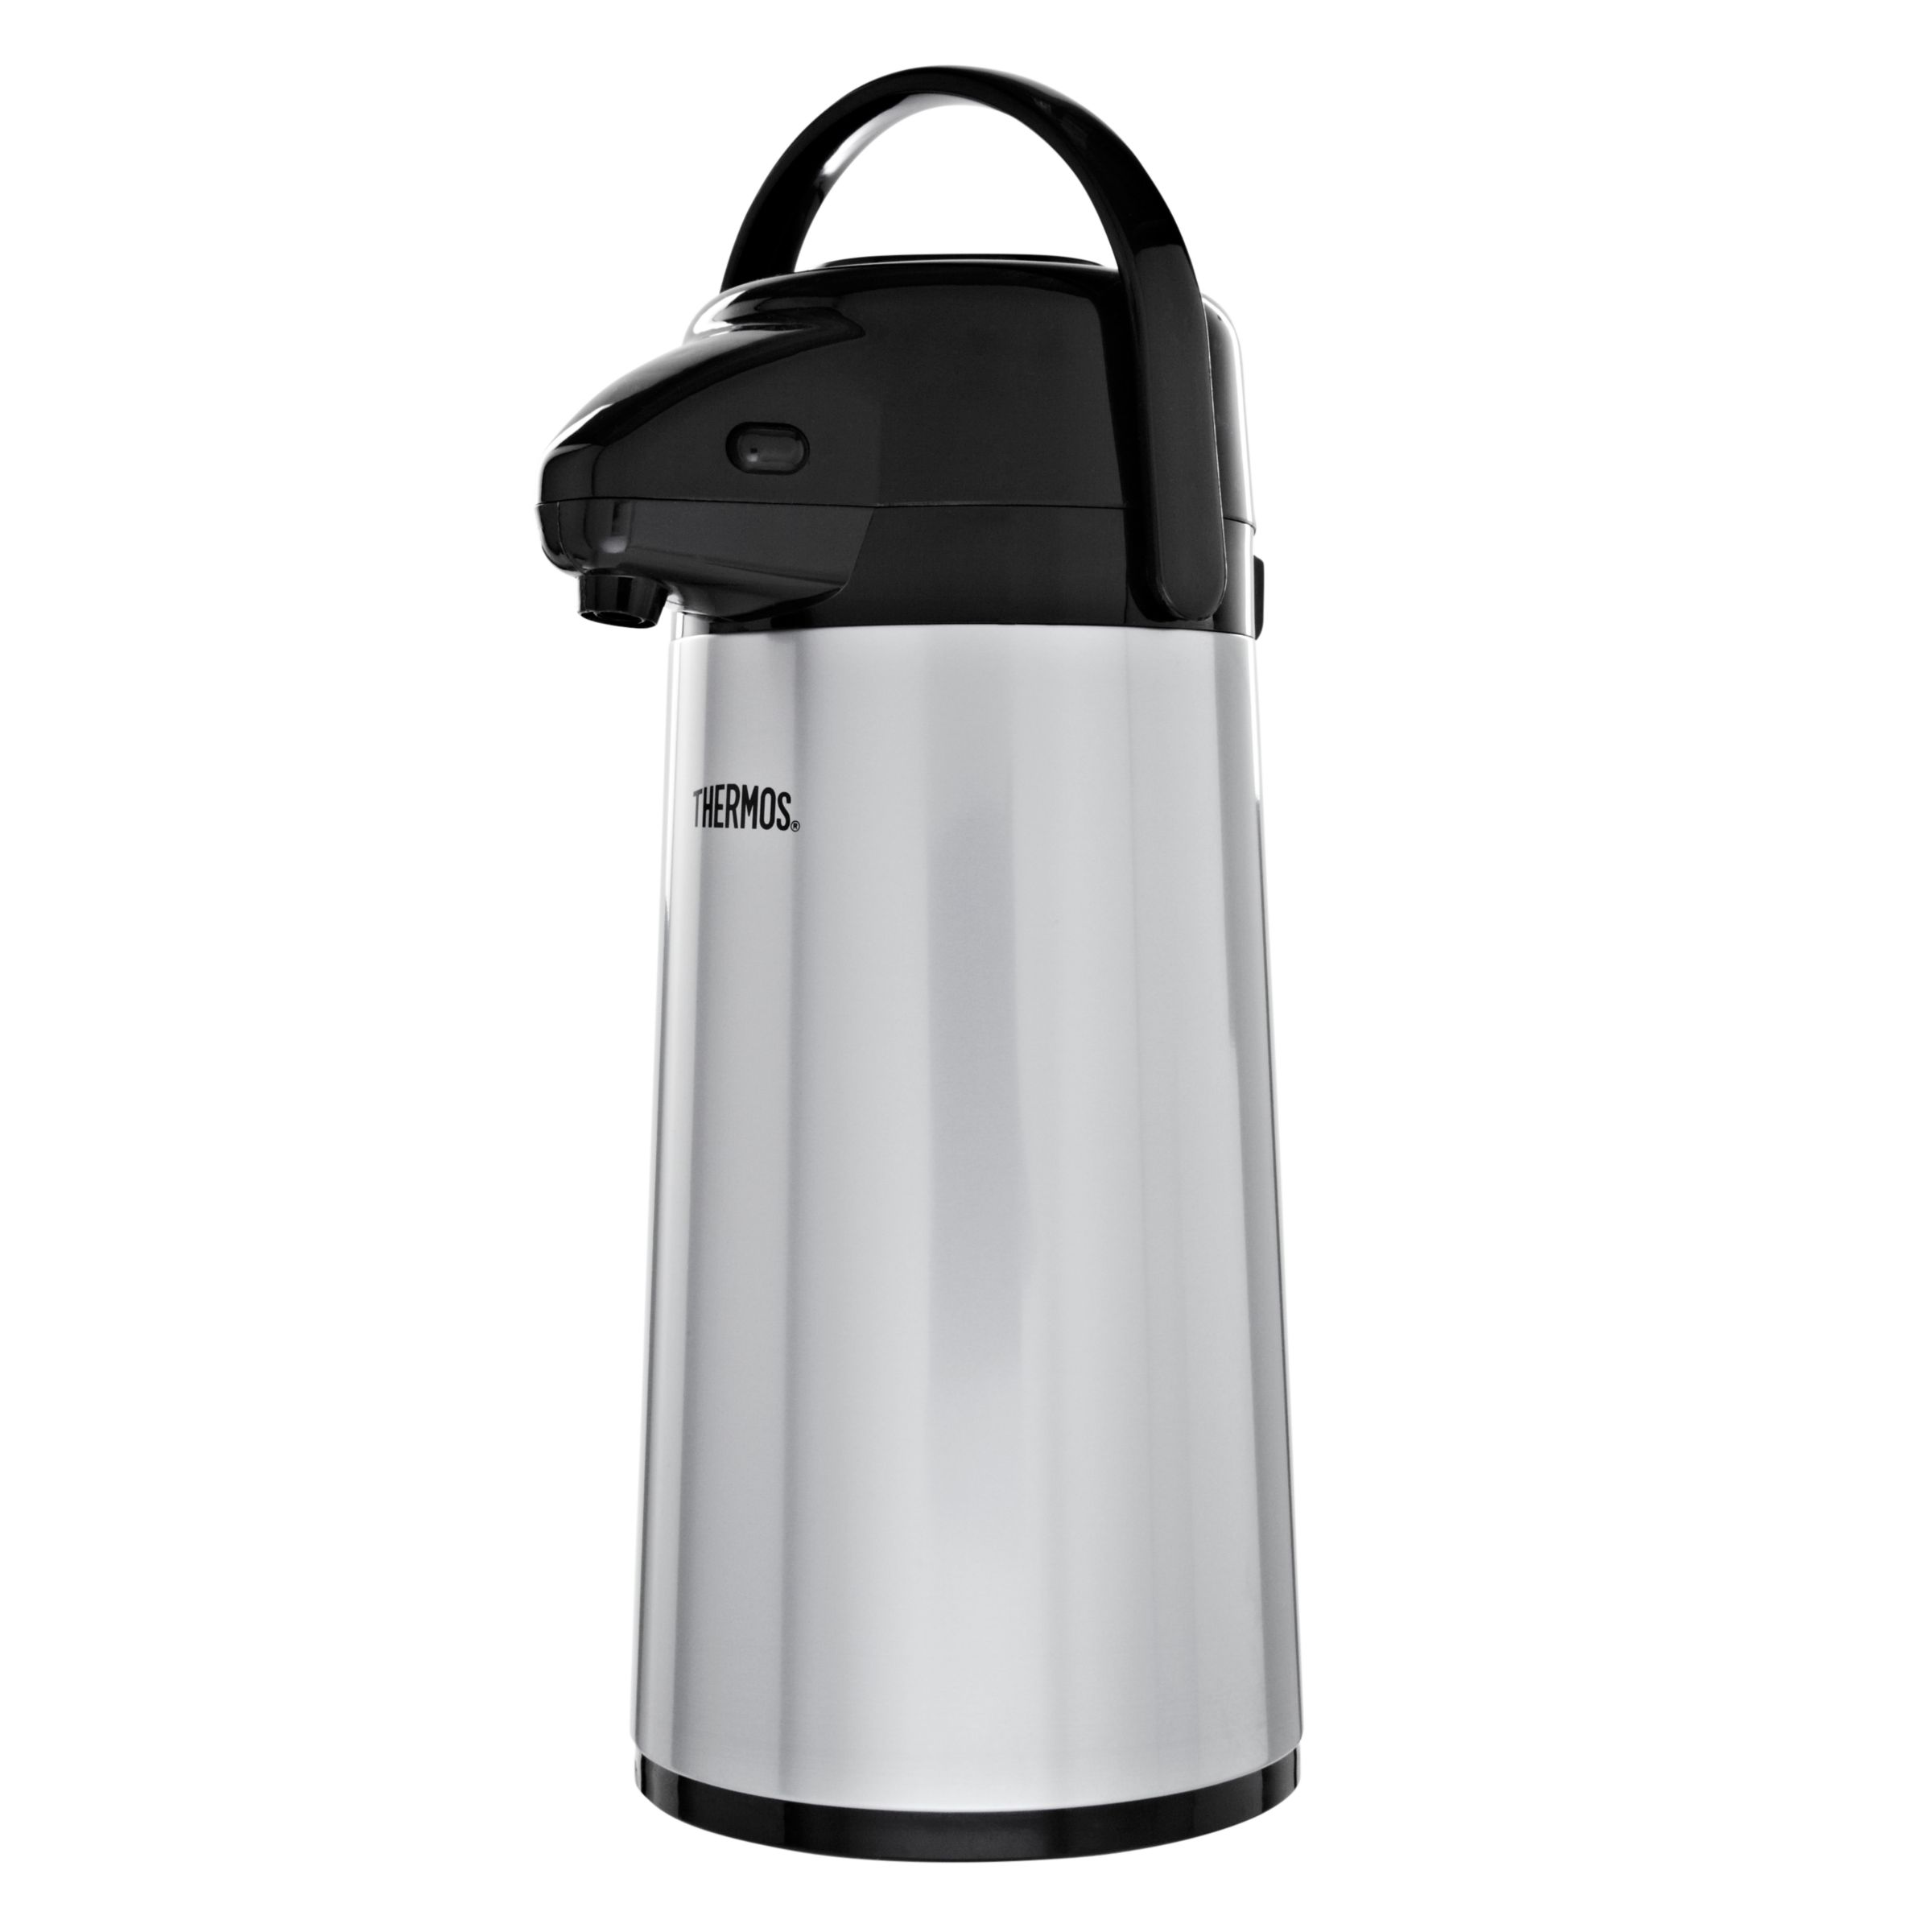 Thermos Push Button Pump Pot with Glass Liner, 1.9L